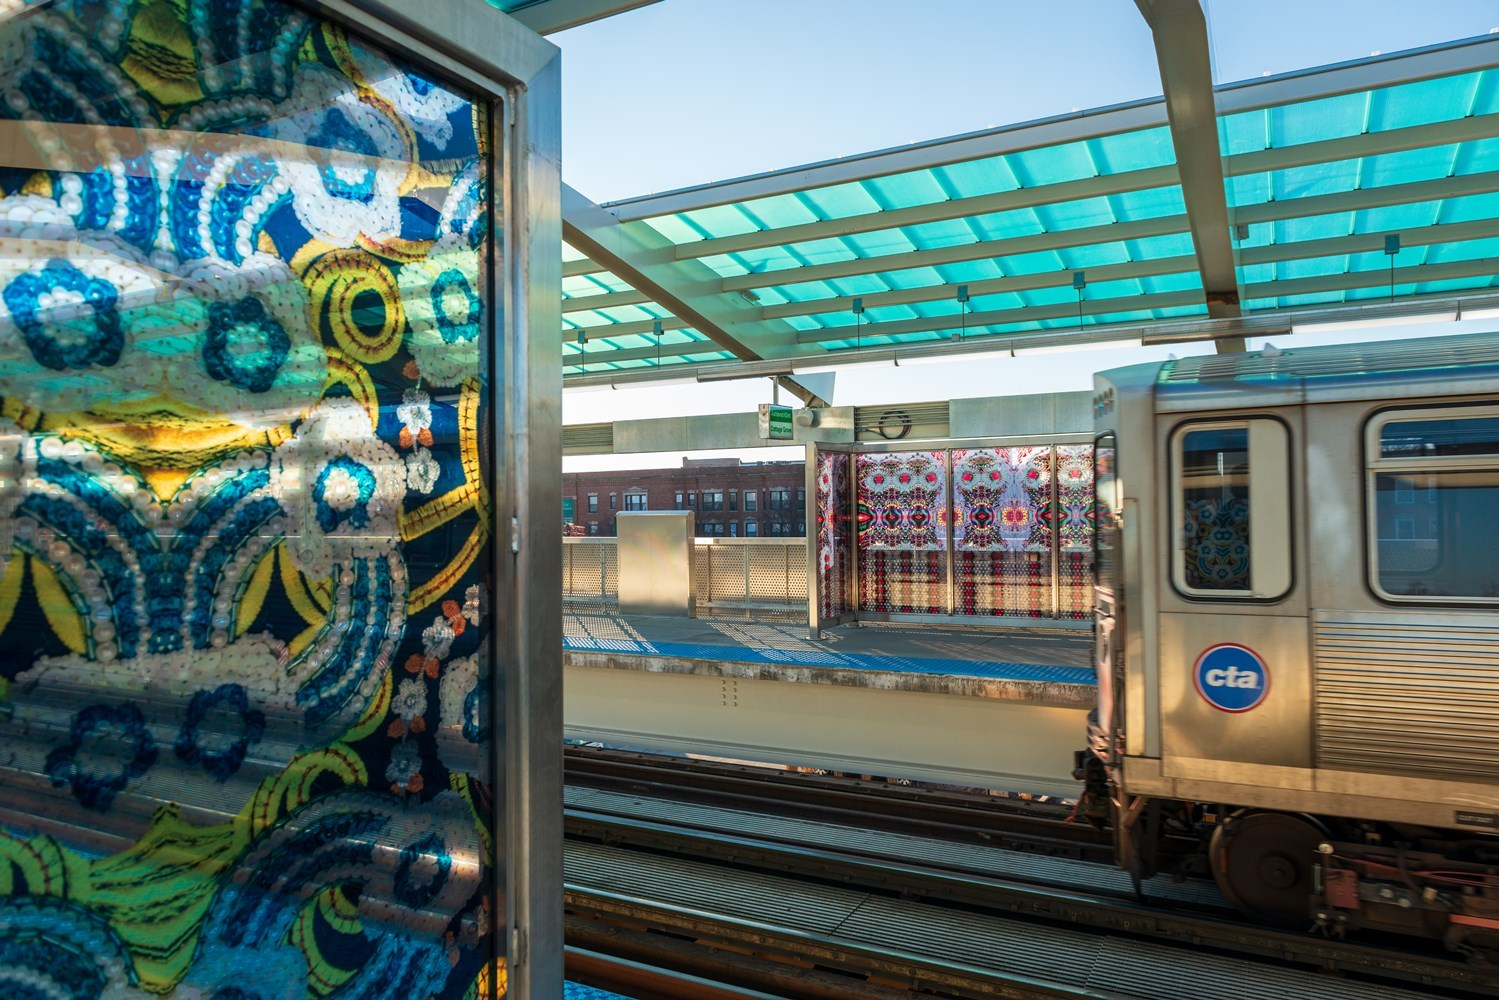 New artistically enhanced windbreaks at Garfield Green Line by Chicago artist Nick Cave